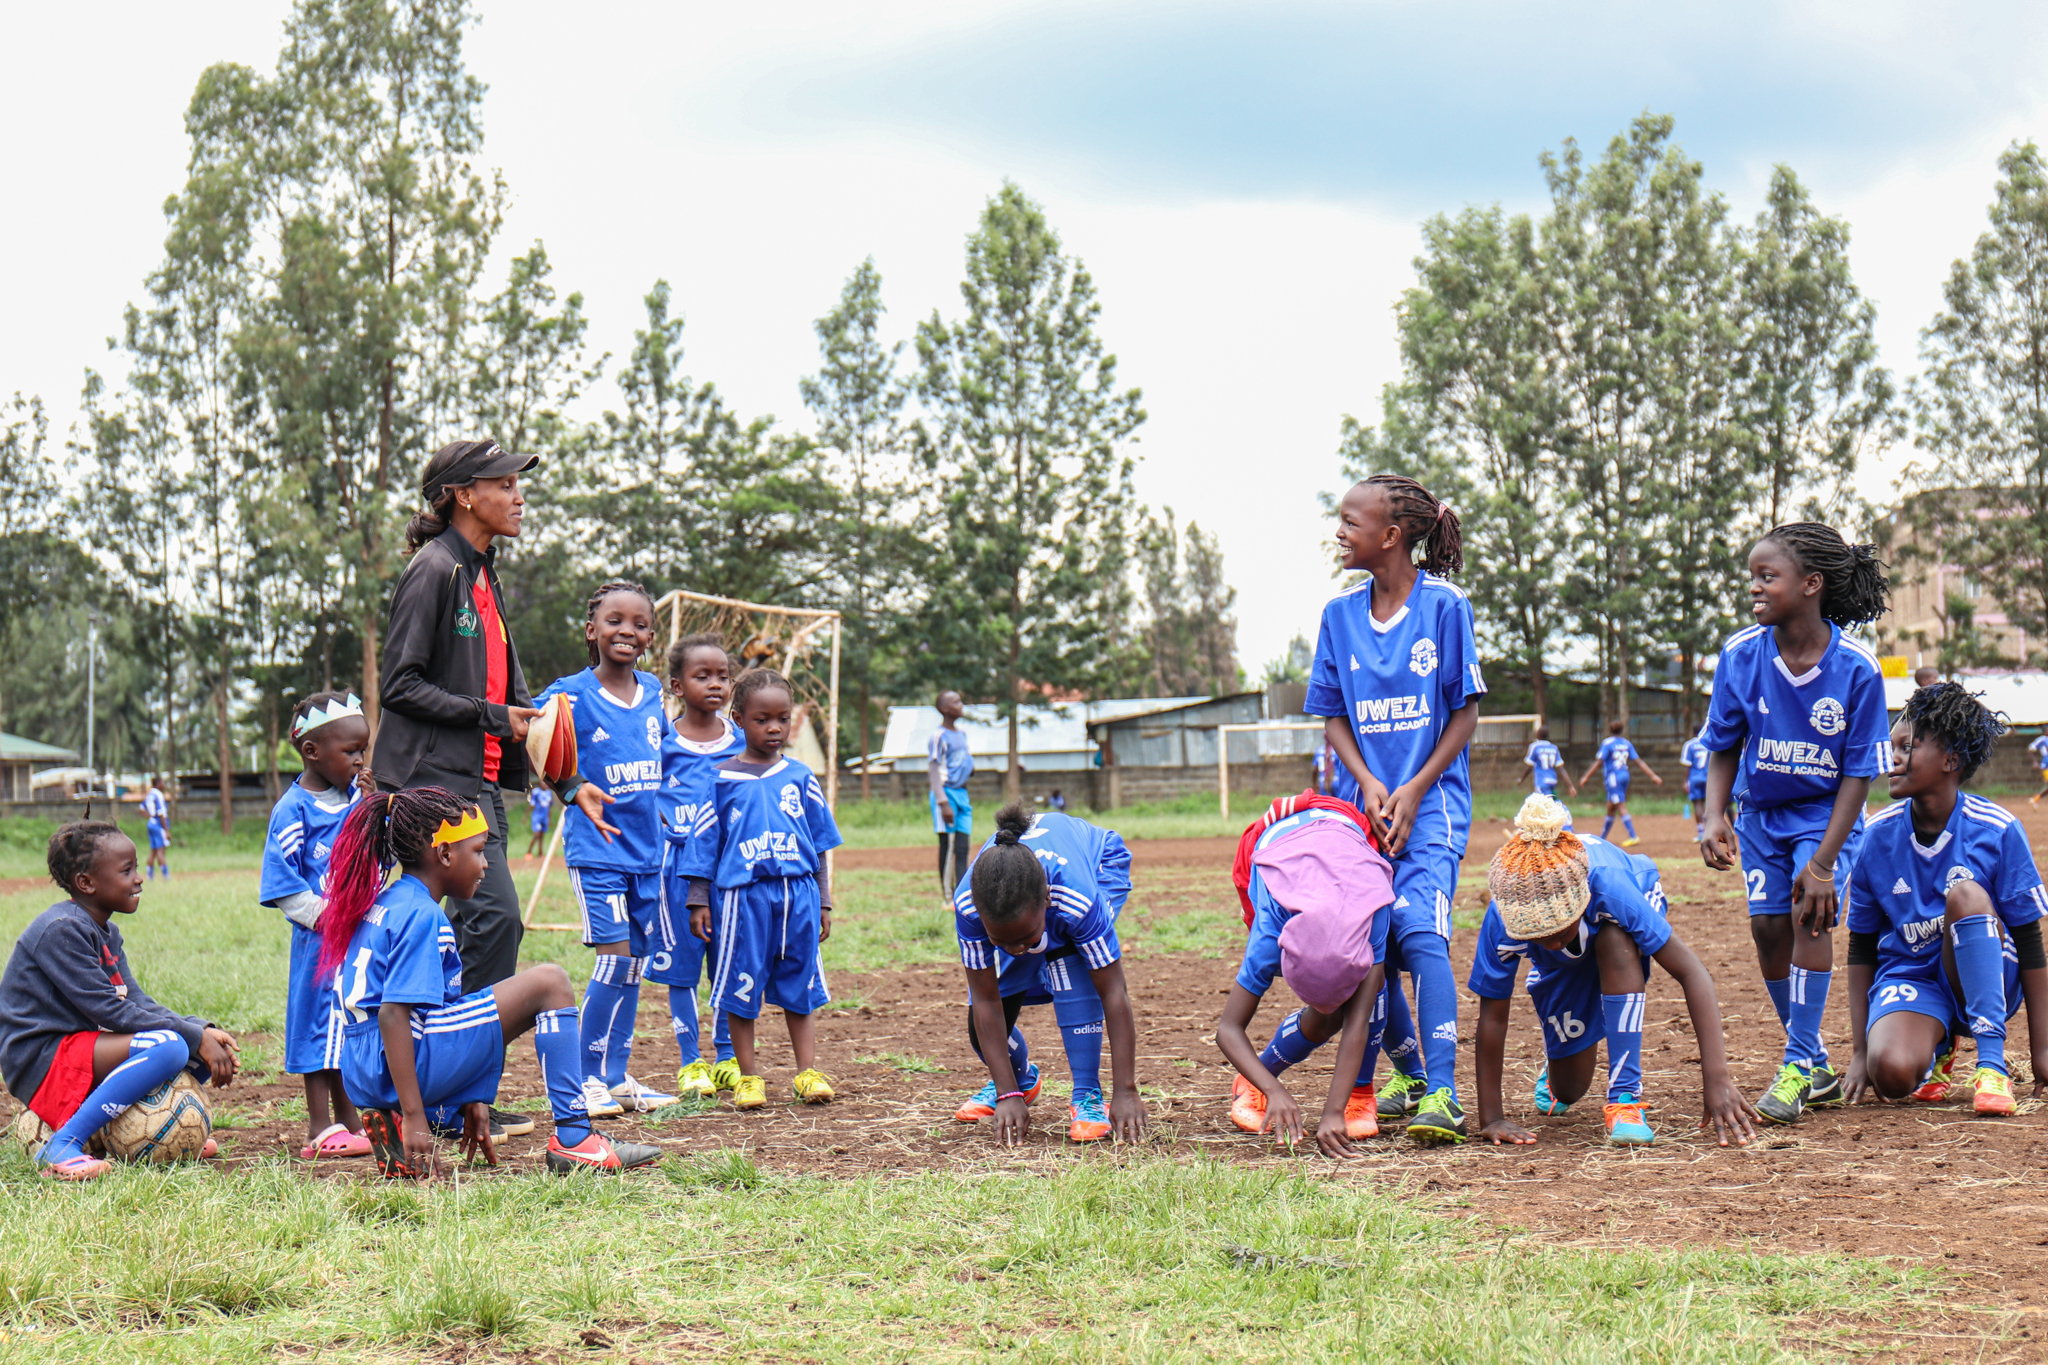 How Sports Impacts The Lives Of Girls And Women Long After Their Playing Days Are Done